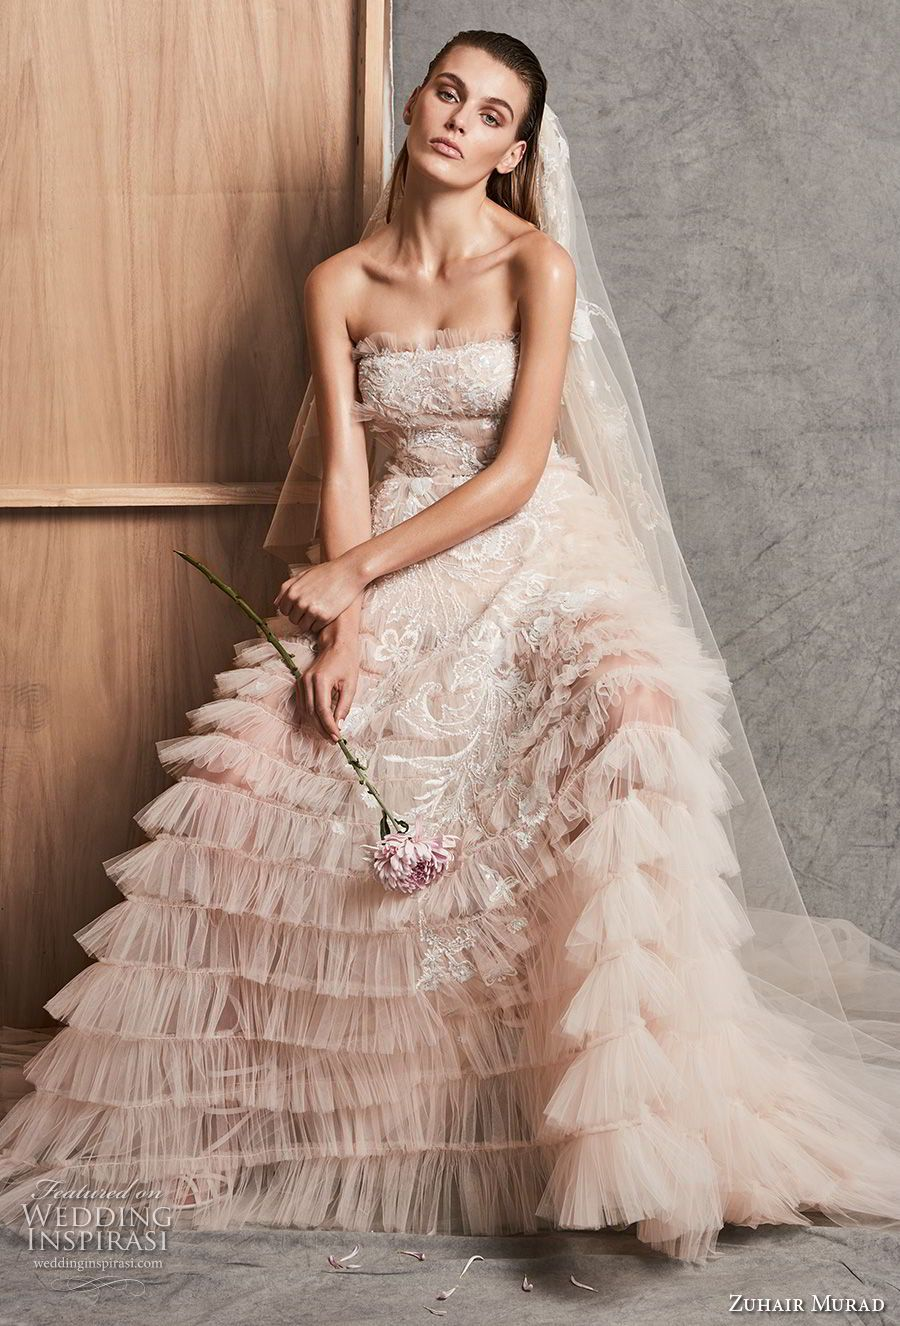 Zuhair murad fall wedding dresses tiered skirts chapel train